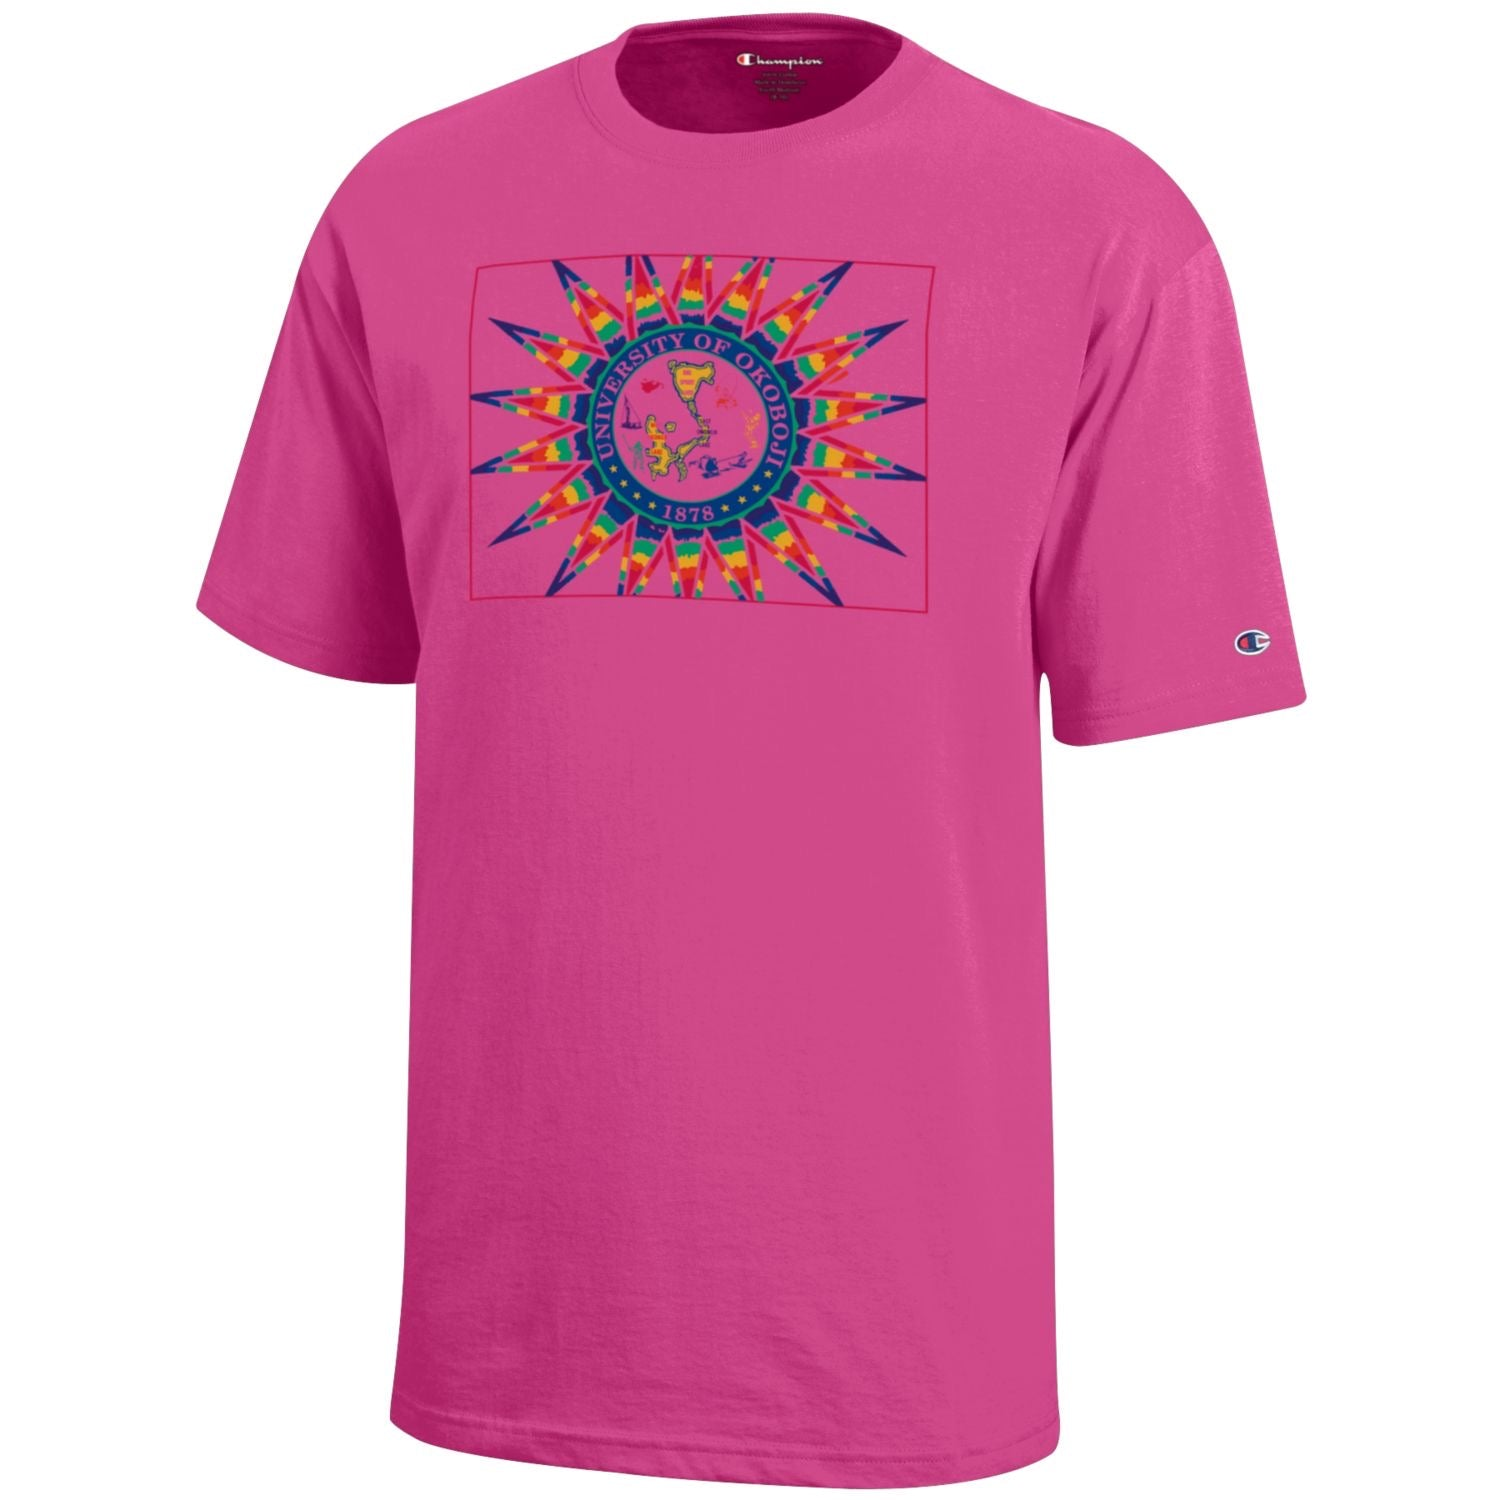 University of Okoboji Young Artist Rainbow Crest - Hot Pink